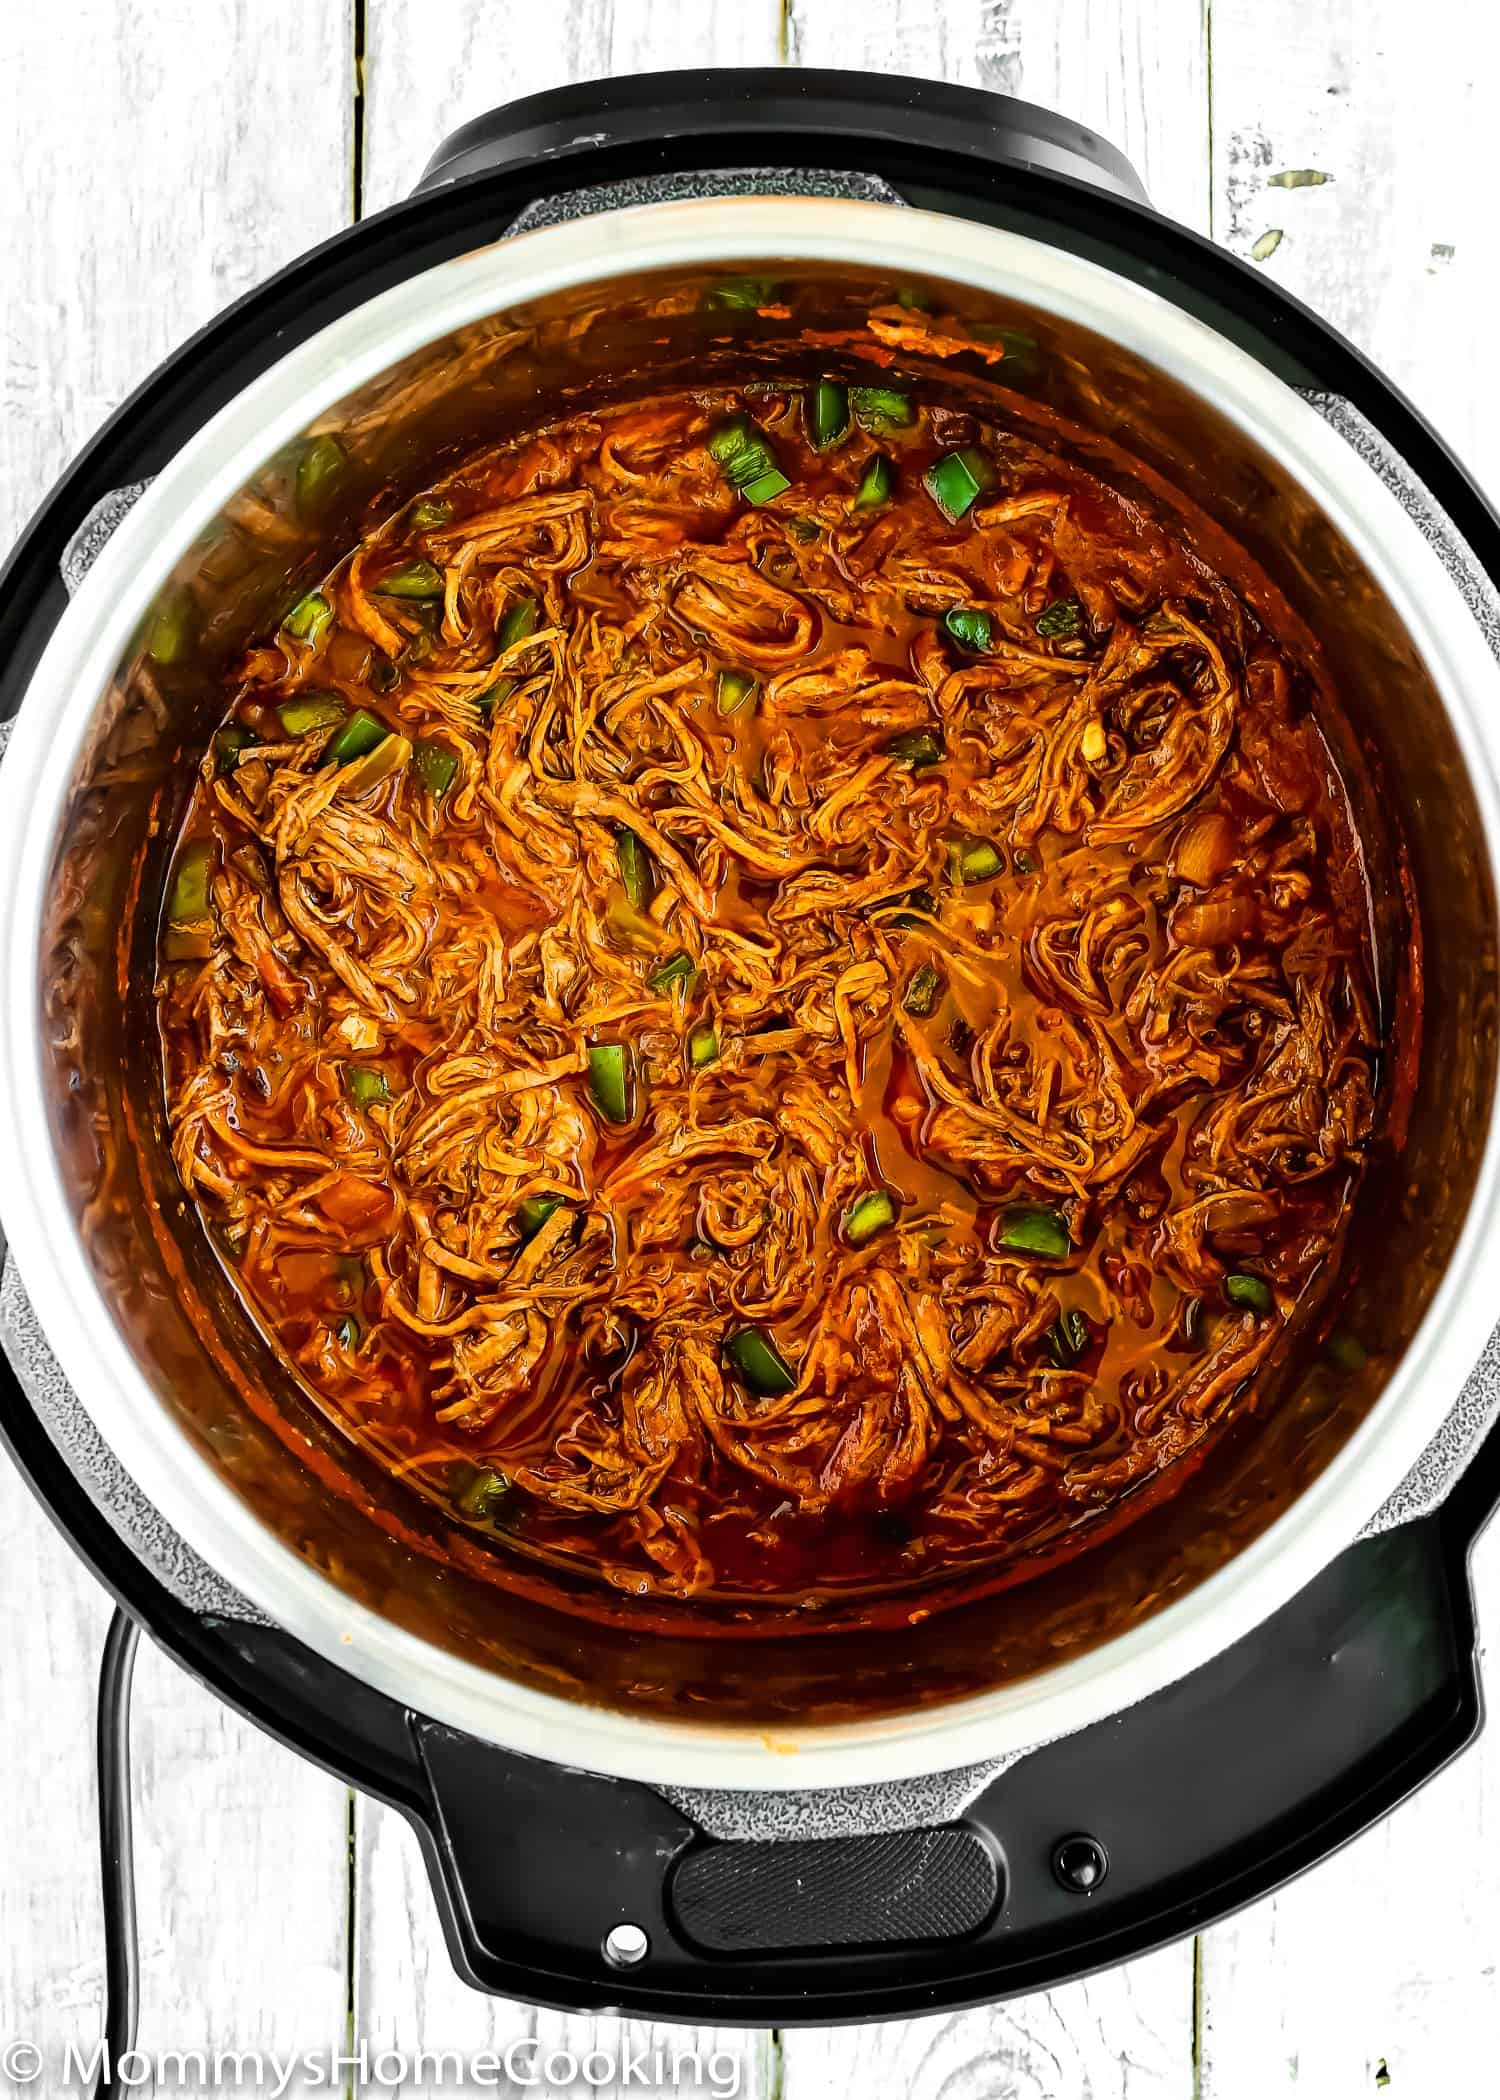 Shredded Beef in a pot